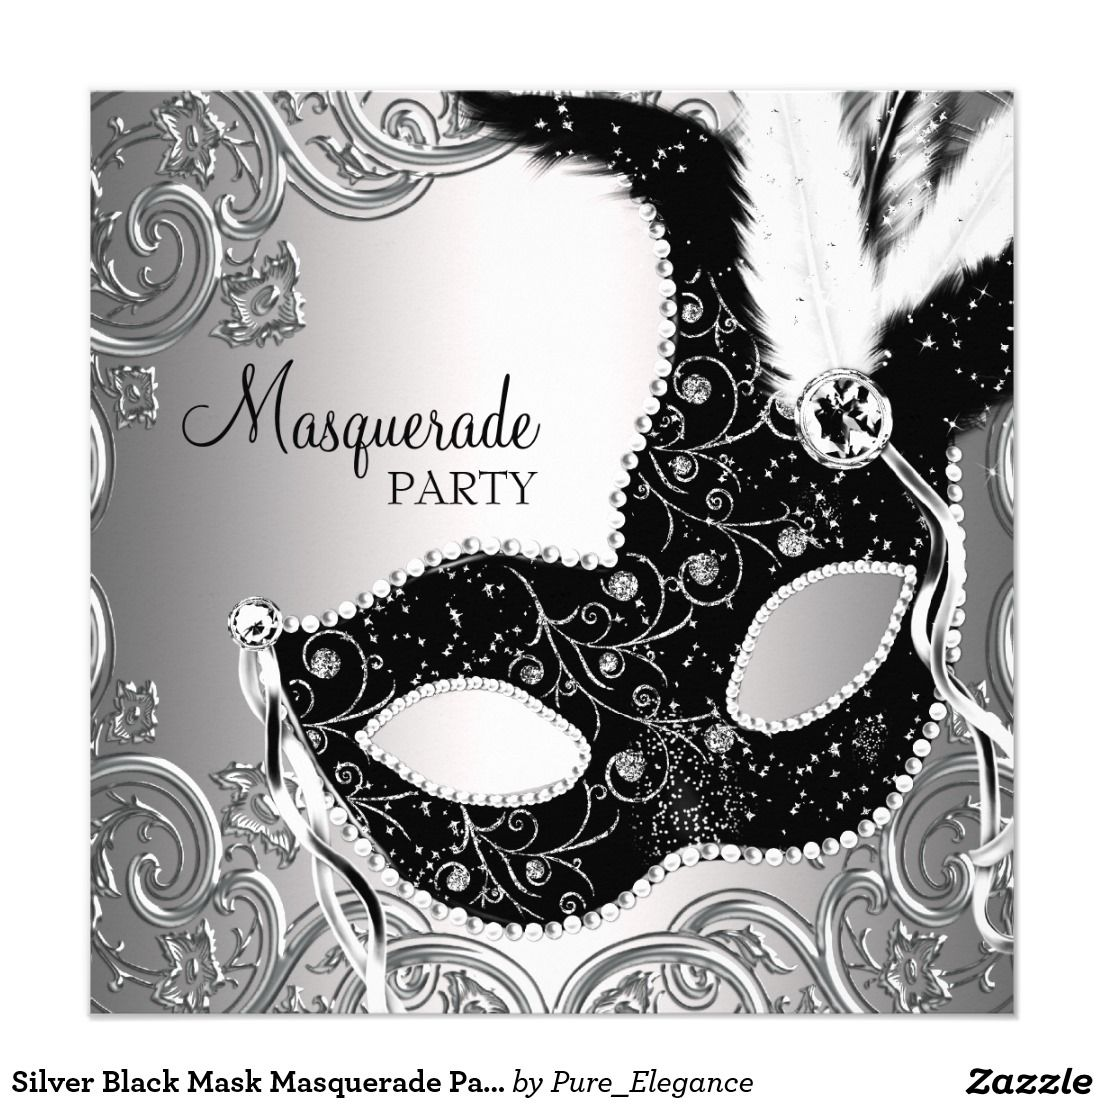 Silver Red and Black Mask Masquerade Party Card – Masquerade Party Invitation Template